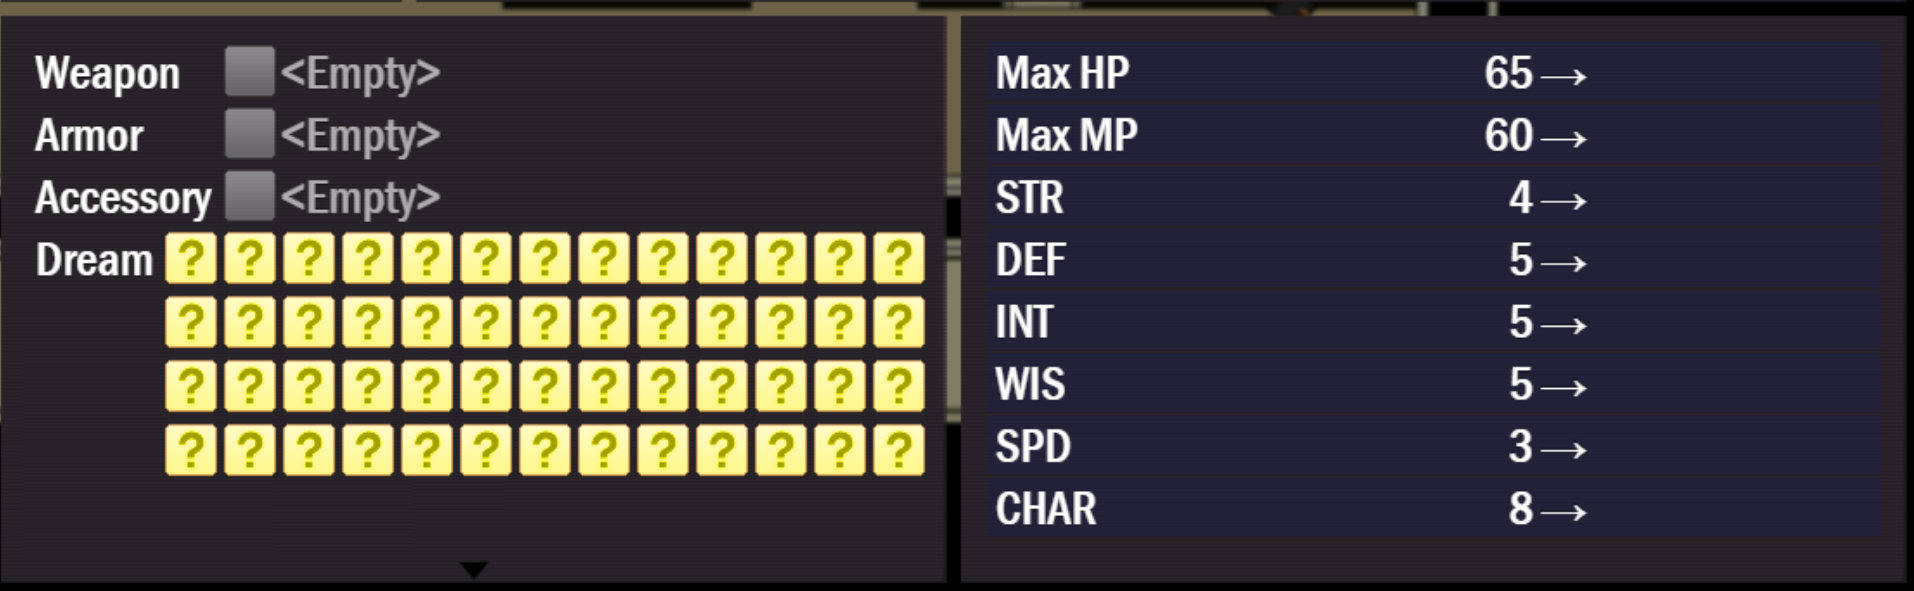 equipment menu.png